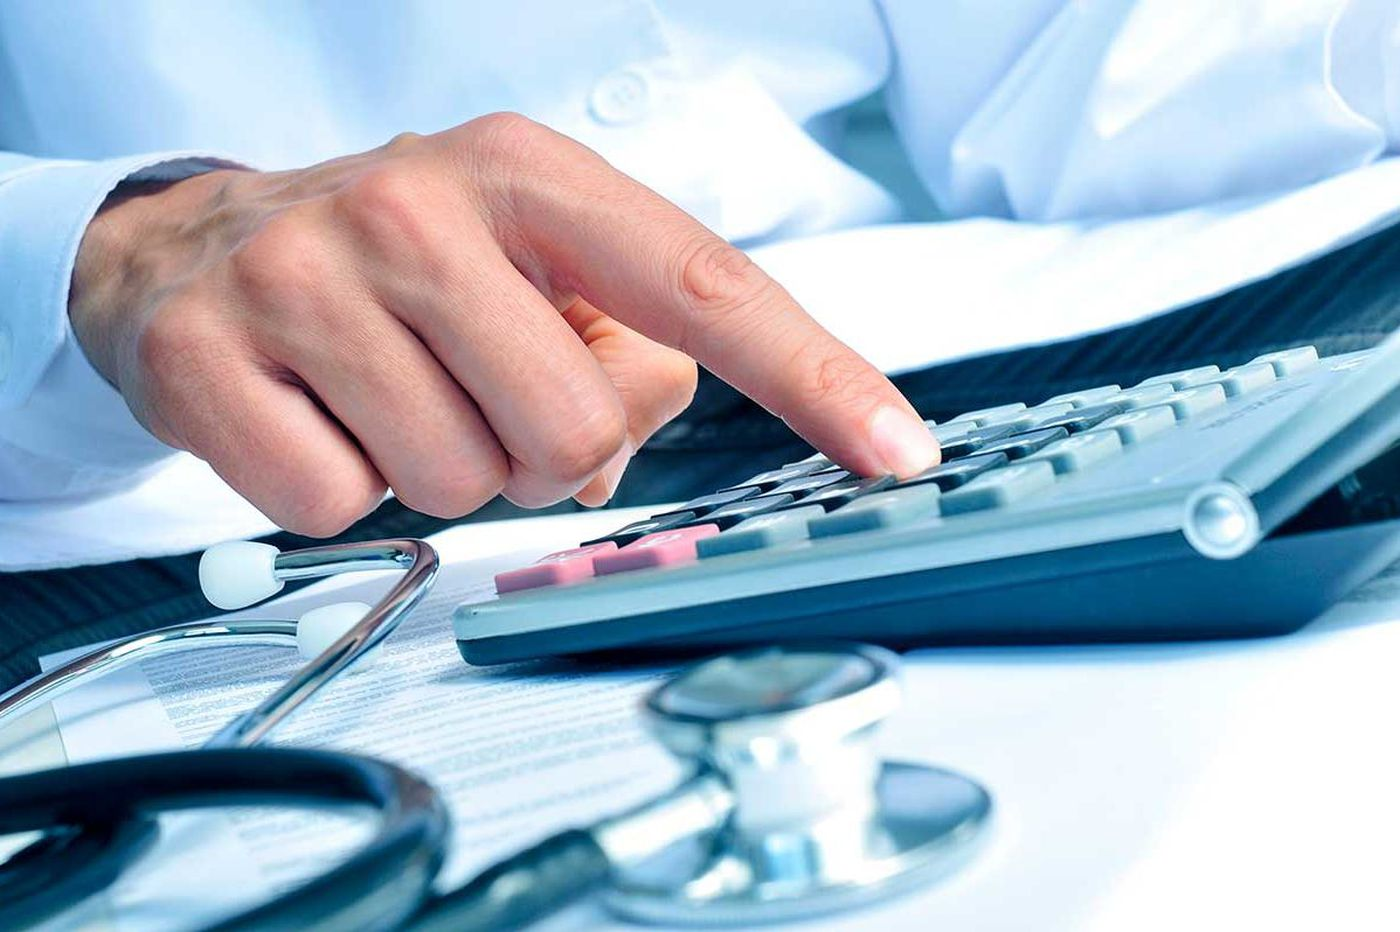 1 in 3 Pennsylvania residents struggles to pay medical bills, survey finds